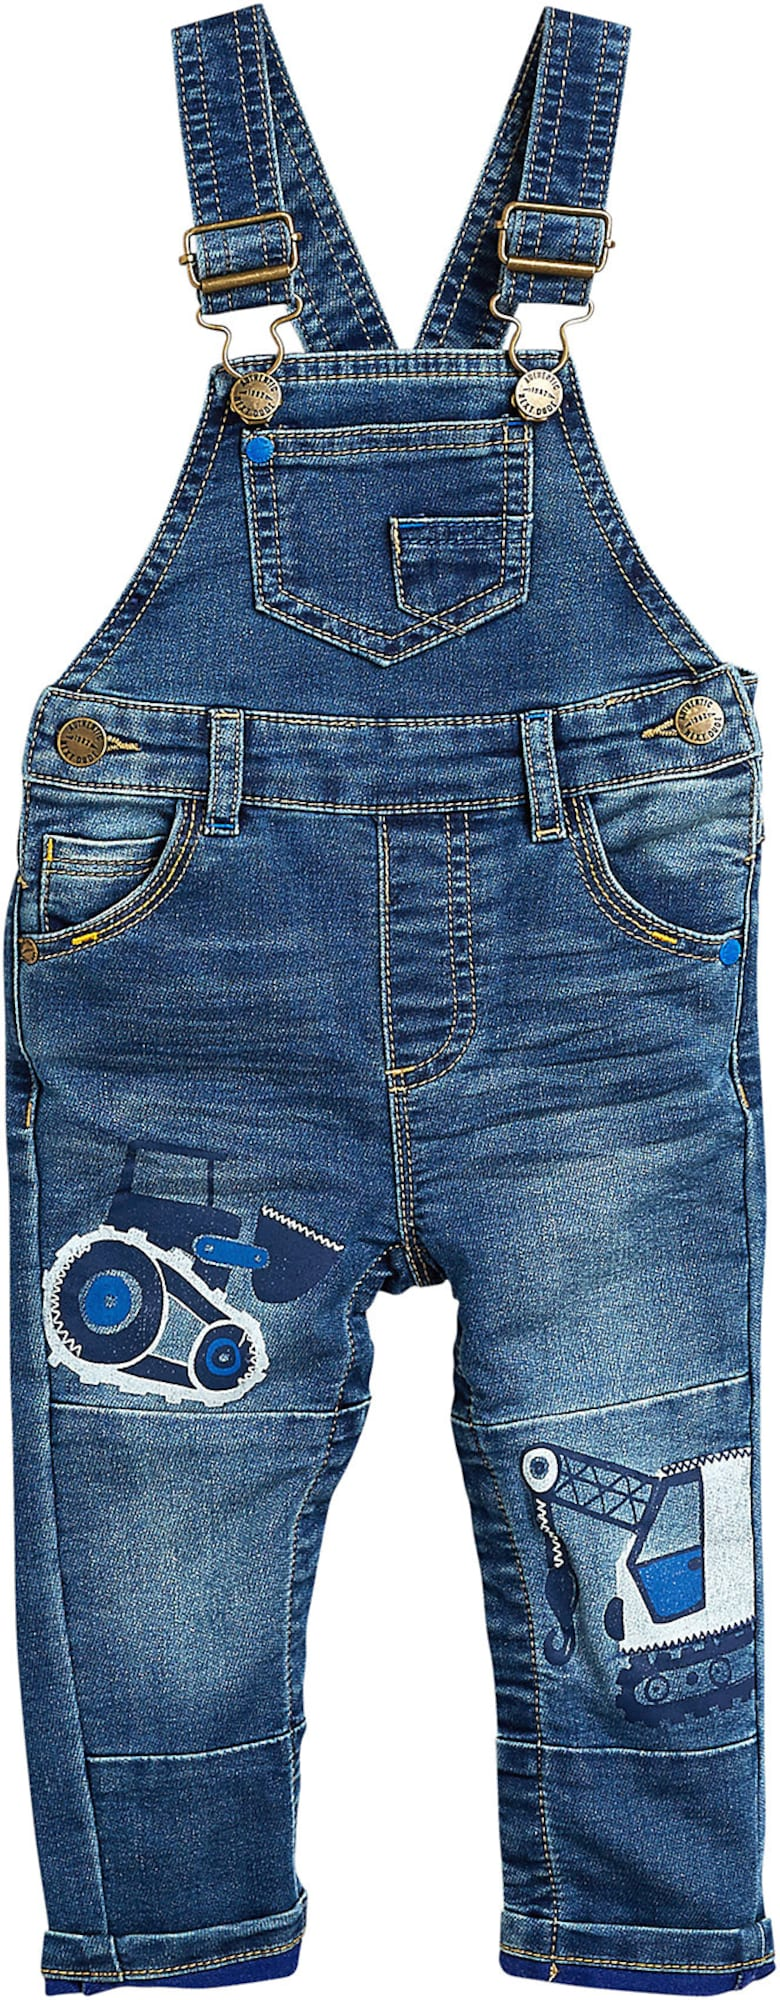 Babyhosen - Latzhose - Onlineshop ABOUT YOU